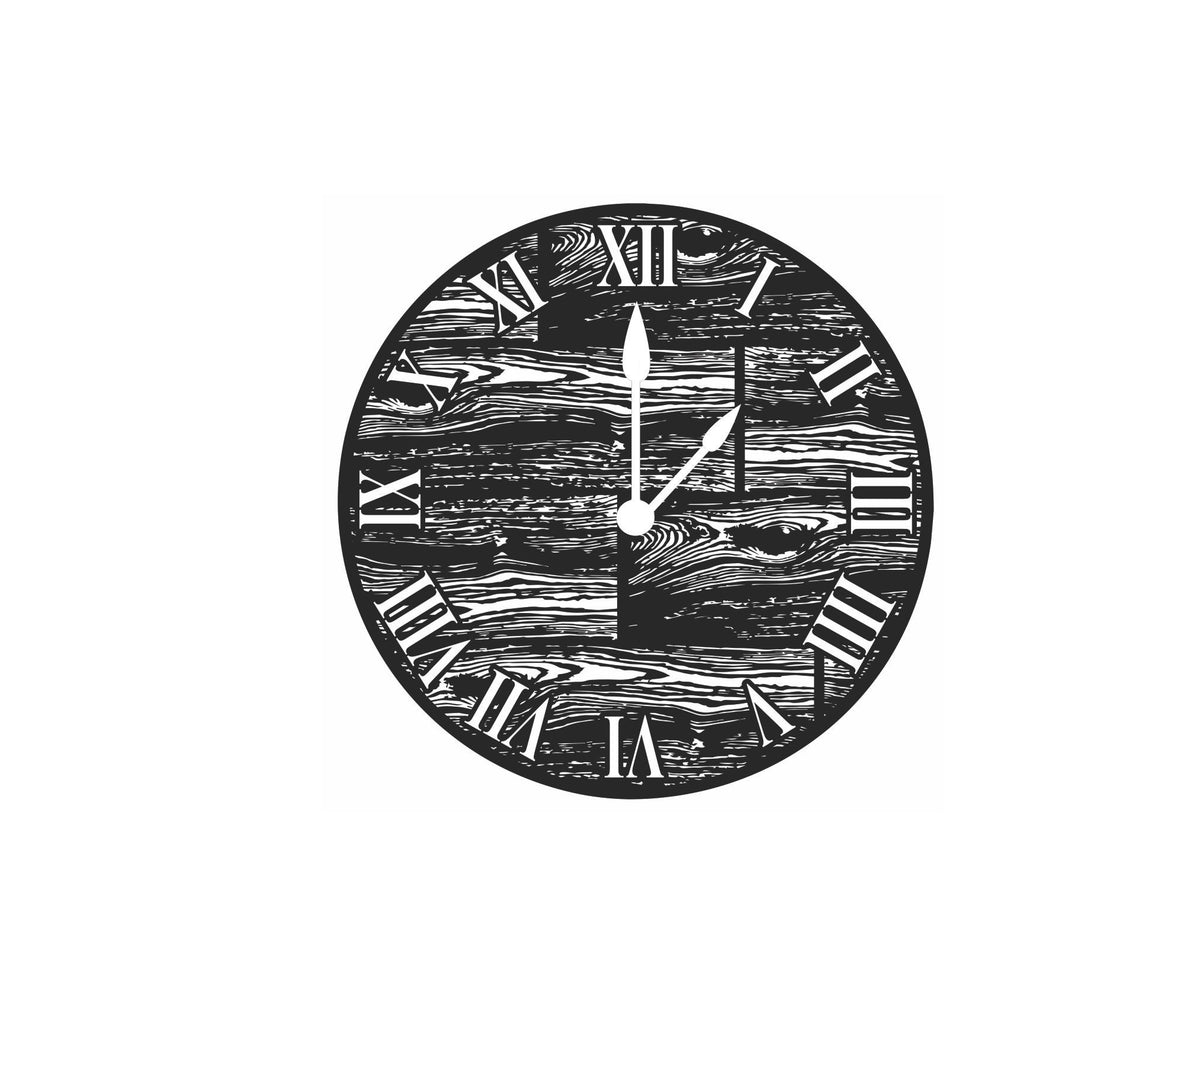 Home Decor - Wood Grain Metal Clock